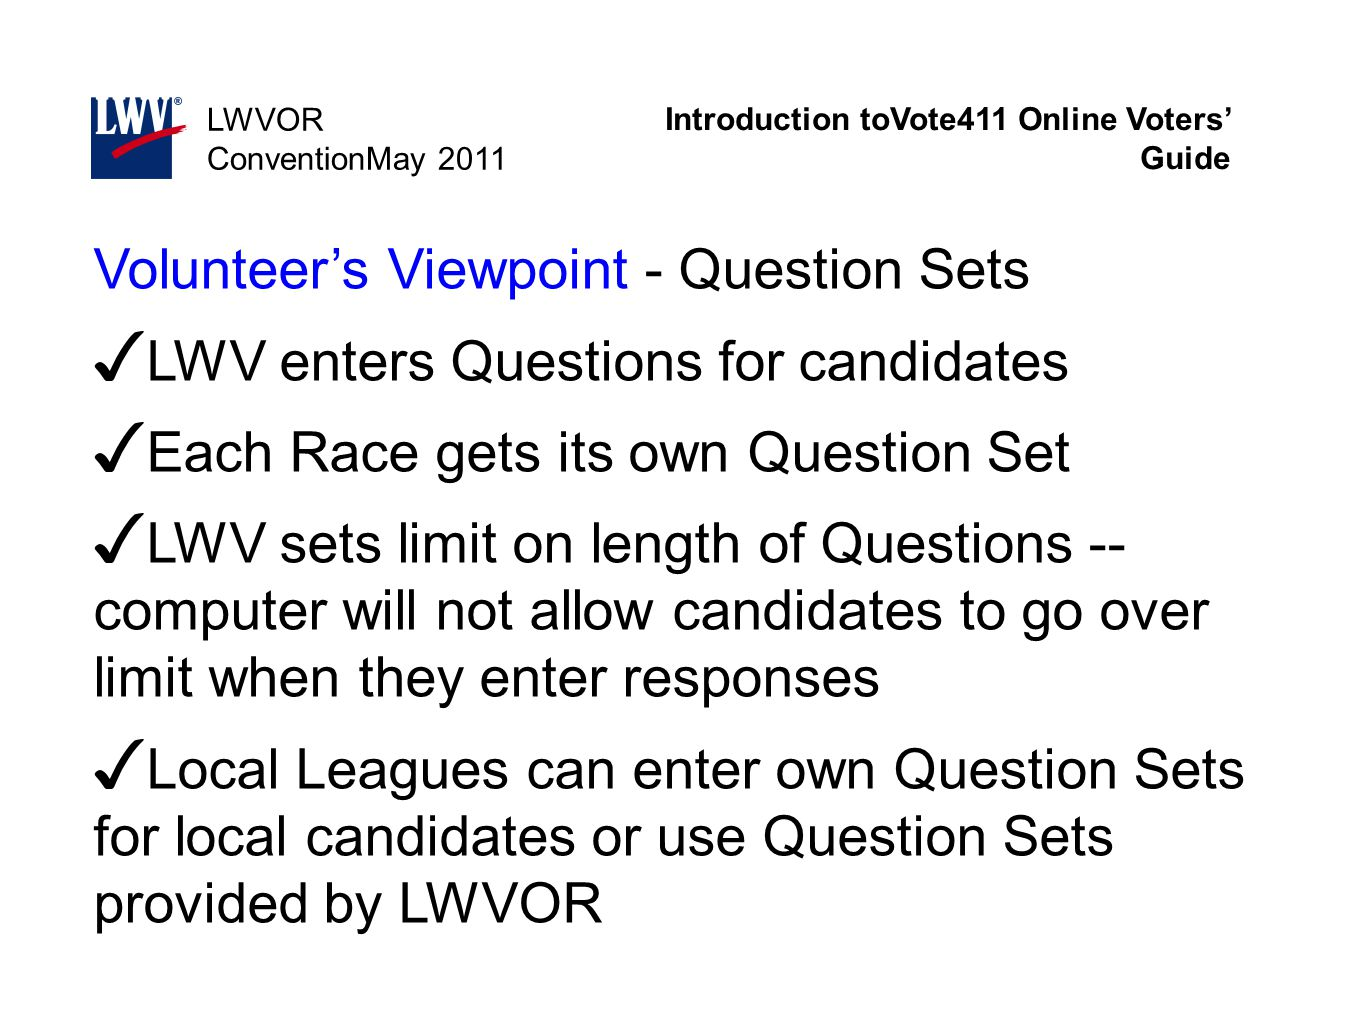 Introduction toVote411 Online Voters' Guide LWVOR ConventionMay 2011 Volunteer's Viewpoint - Question Sets ✓ LWV enters Questions for candidates ✓ Eac